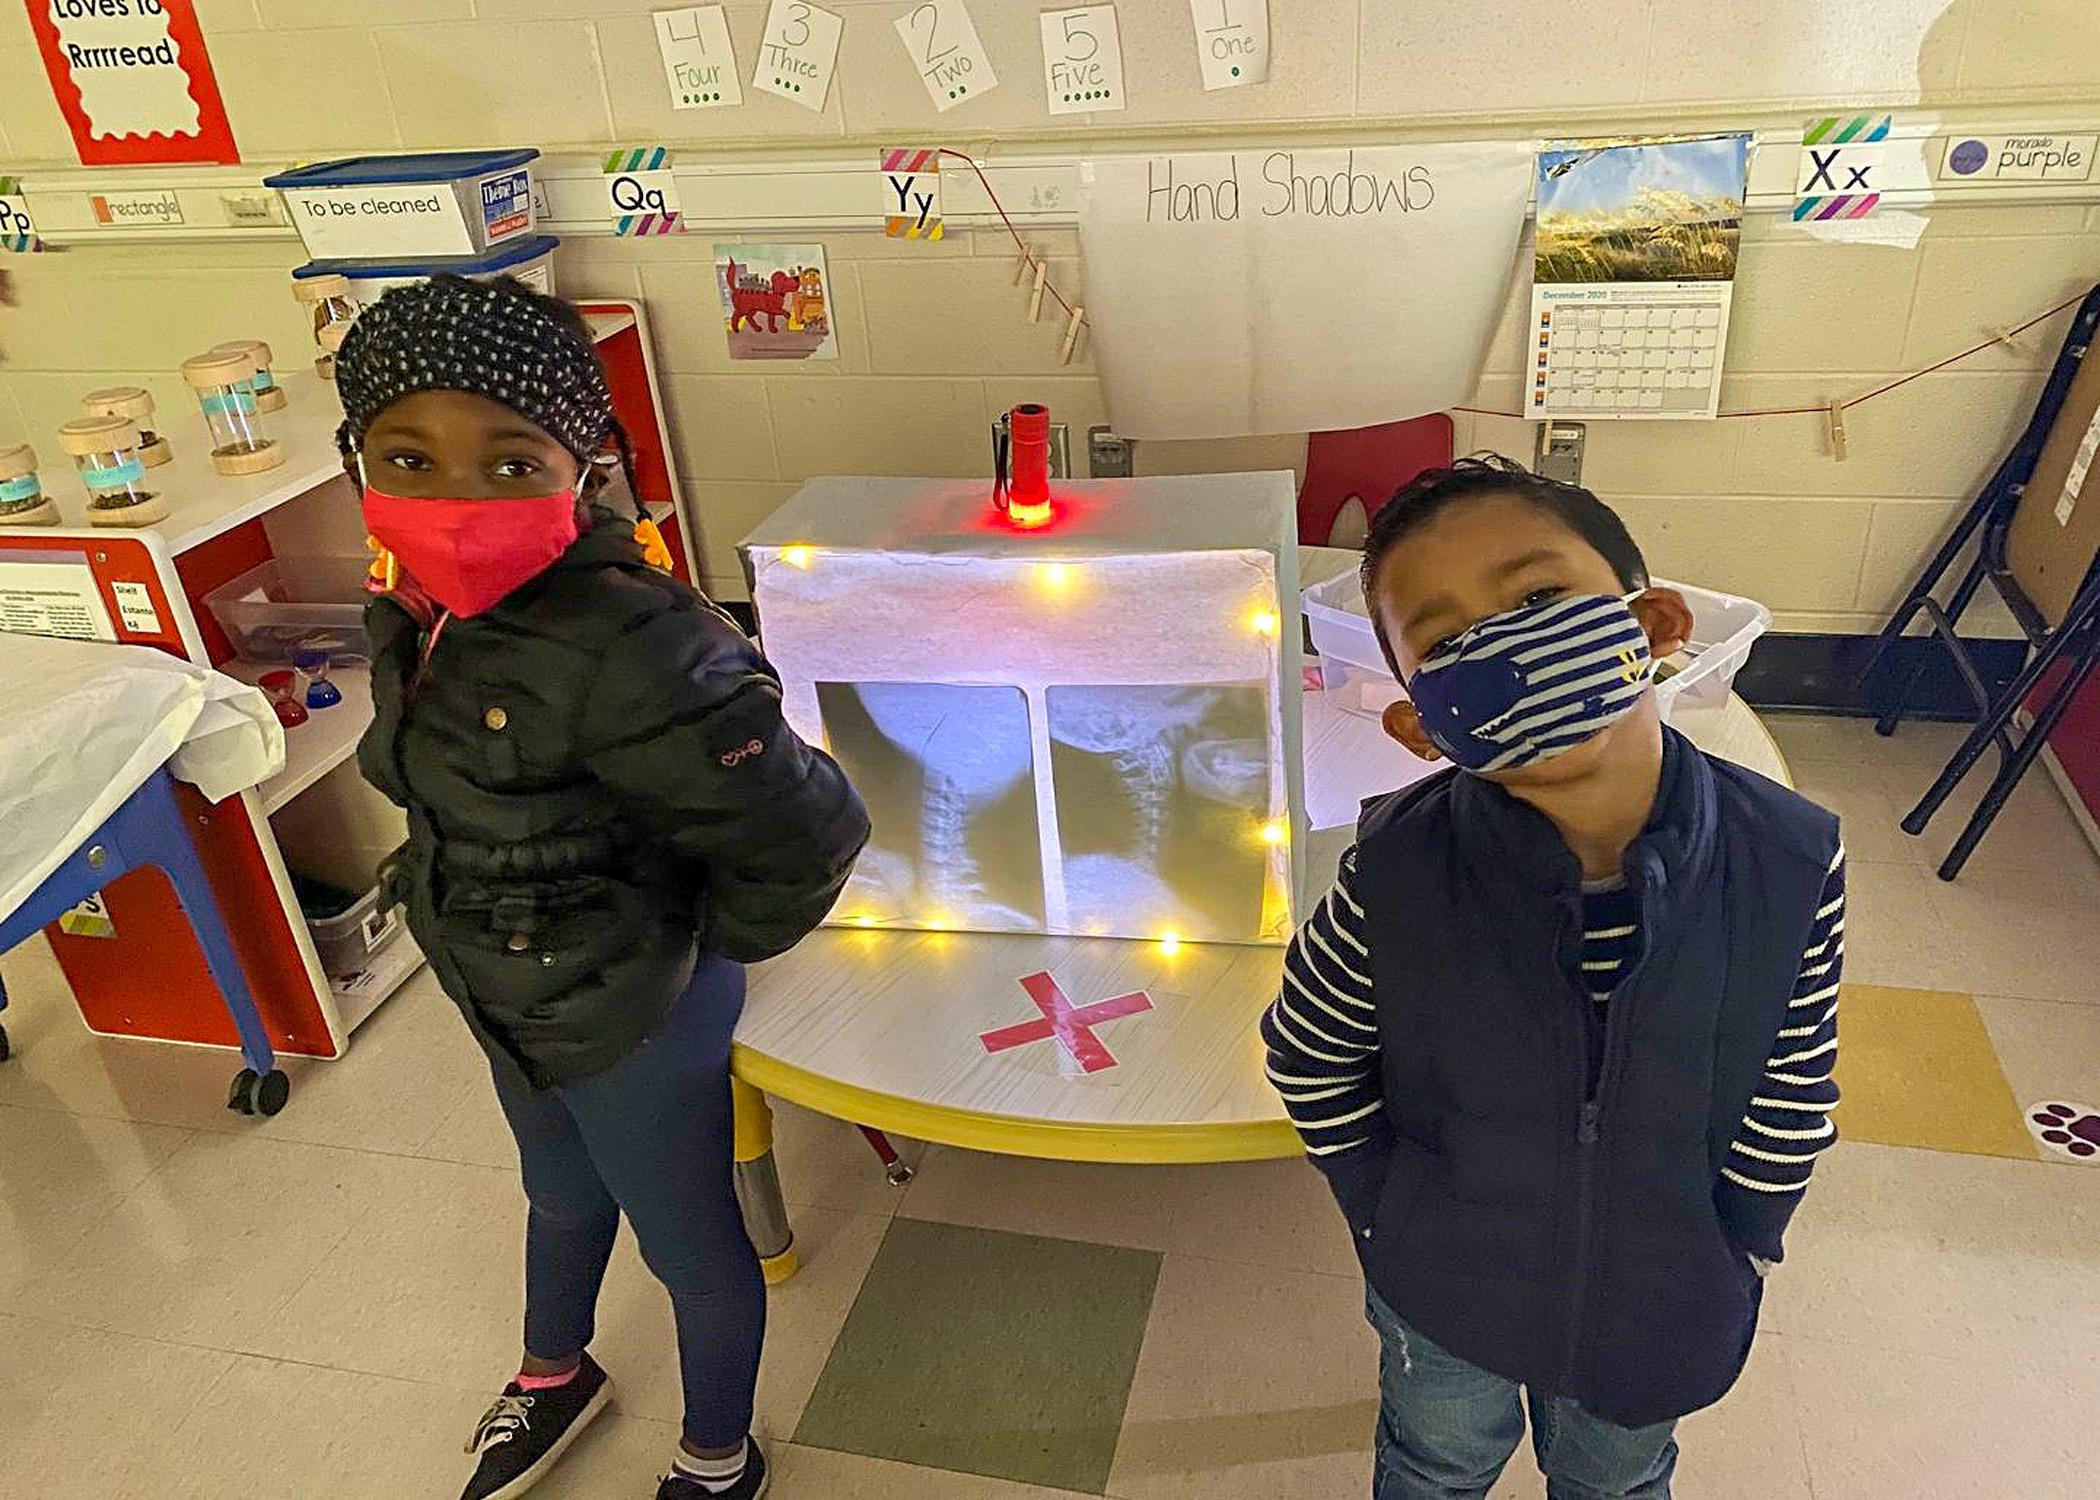 Two children in masks stand in front of an activity center in a classroom.